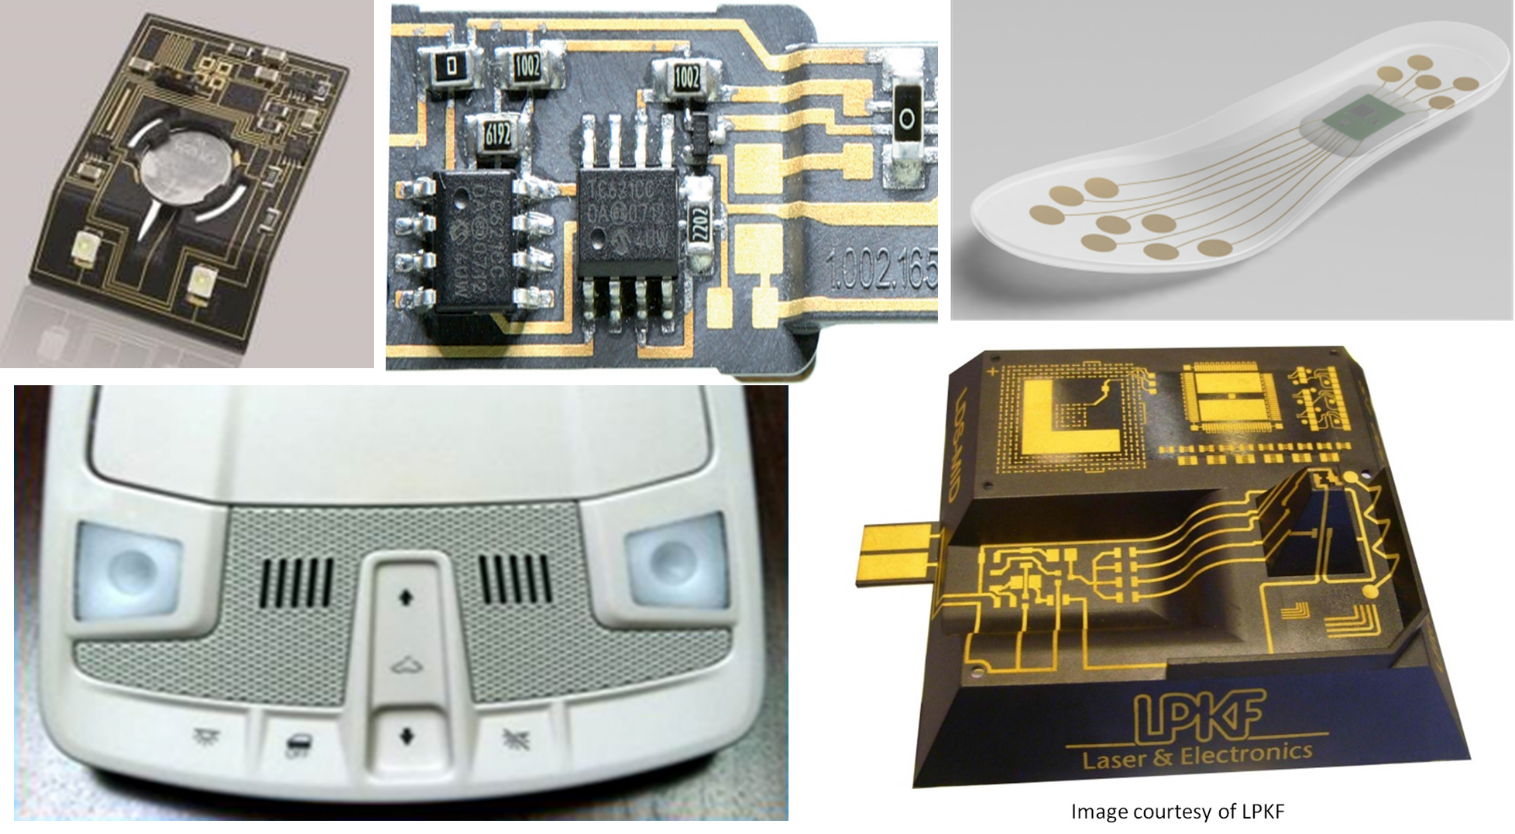 Design Hmi Flexible Hybrid Electronics Mount Printed Circuit Boards In Addition To Performing Mounting The Challenge Has Been Need For A Heat Sink Transfer Away From Leds Coupled With Board Mounted